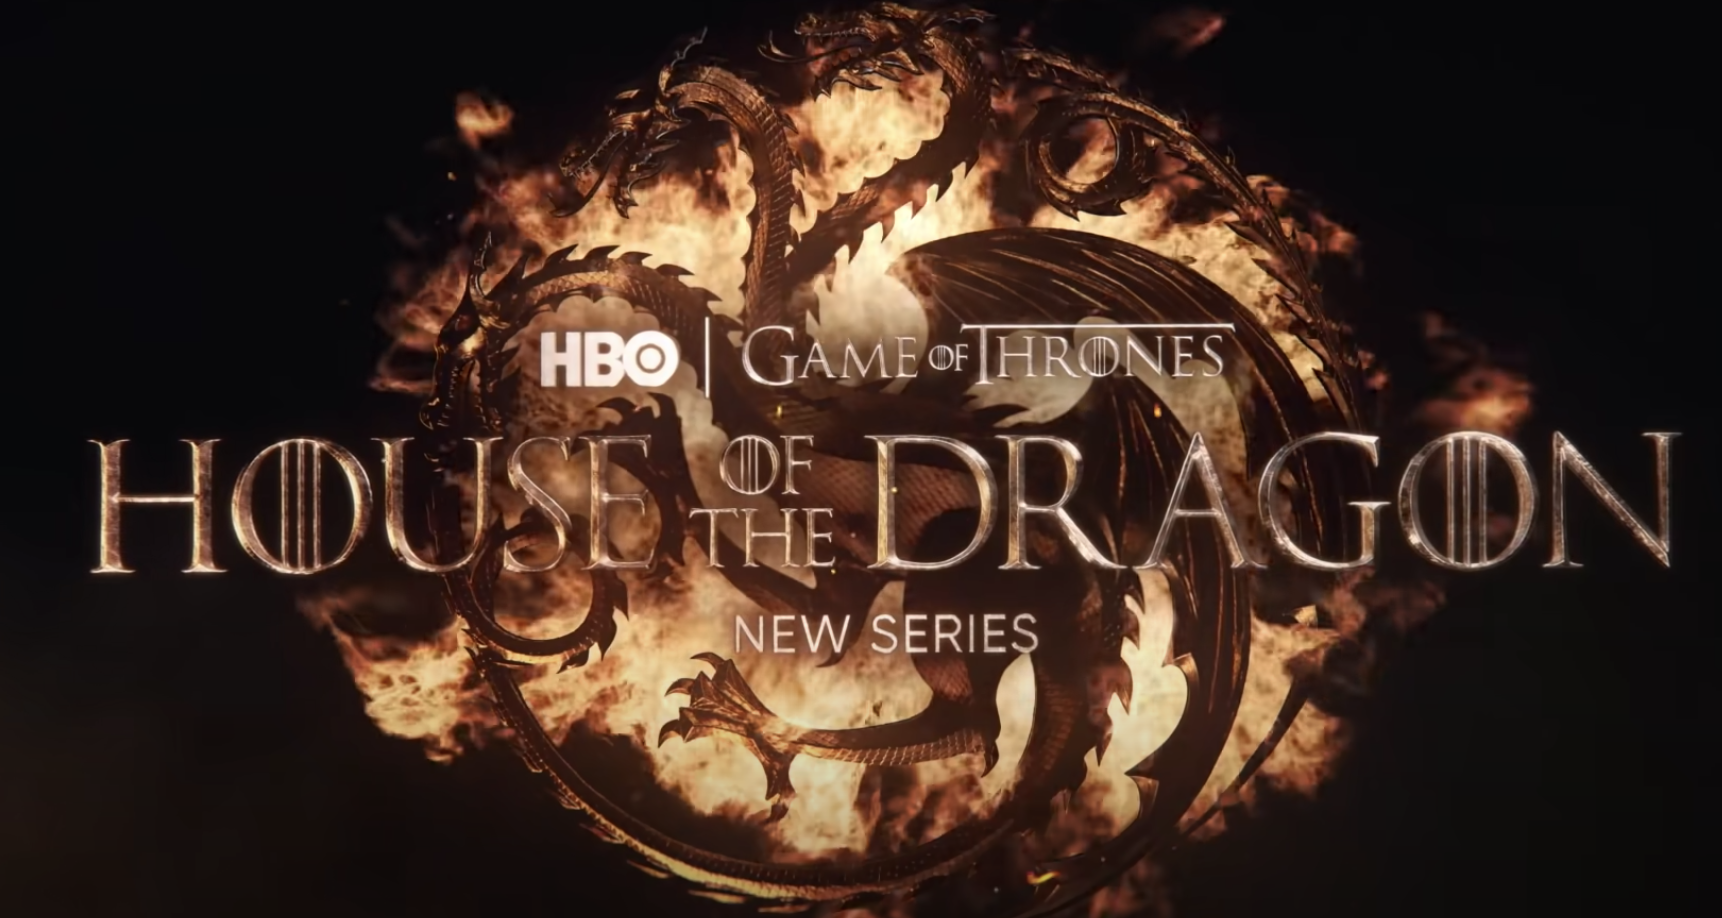 'GOT' Prequel Series 'House of the Dragon' Enlists Seven To Its Cast at HBO